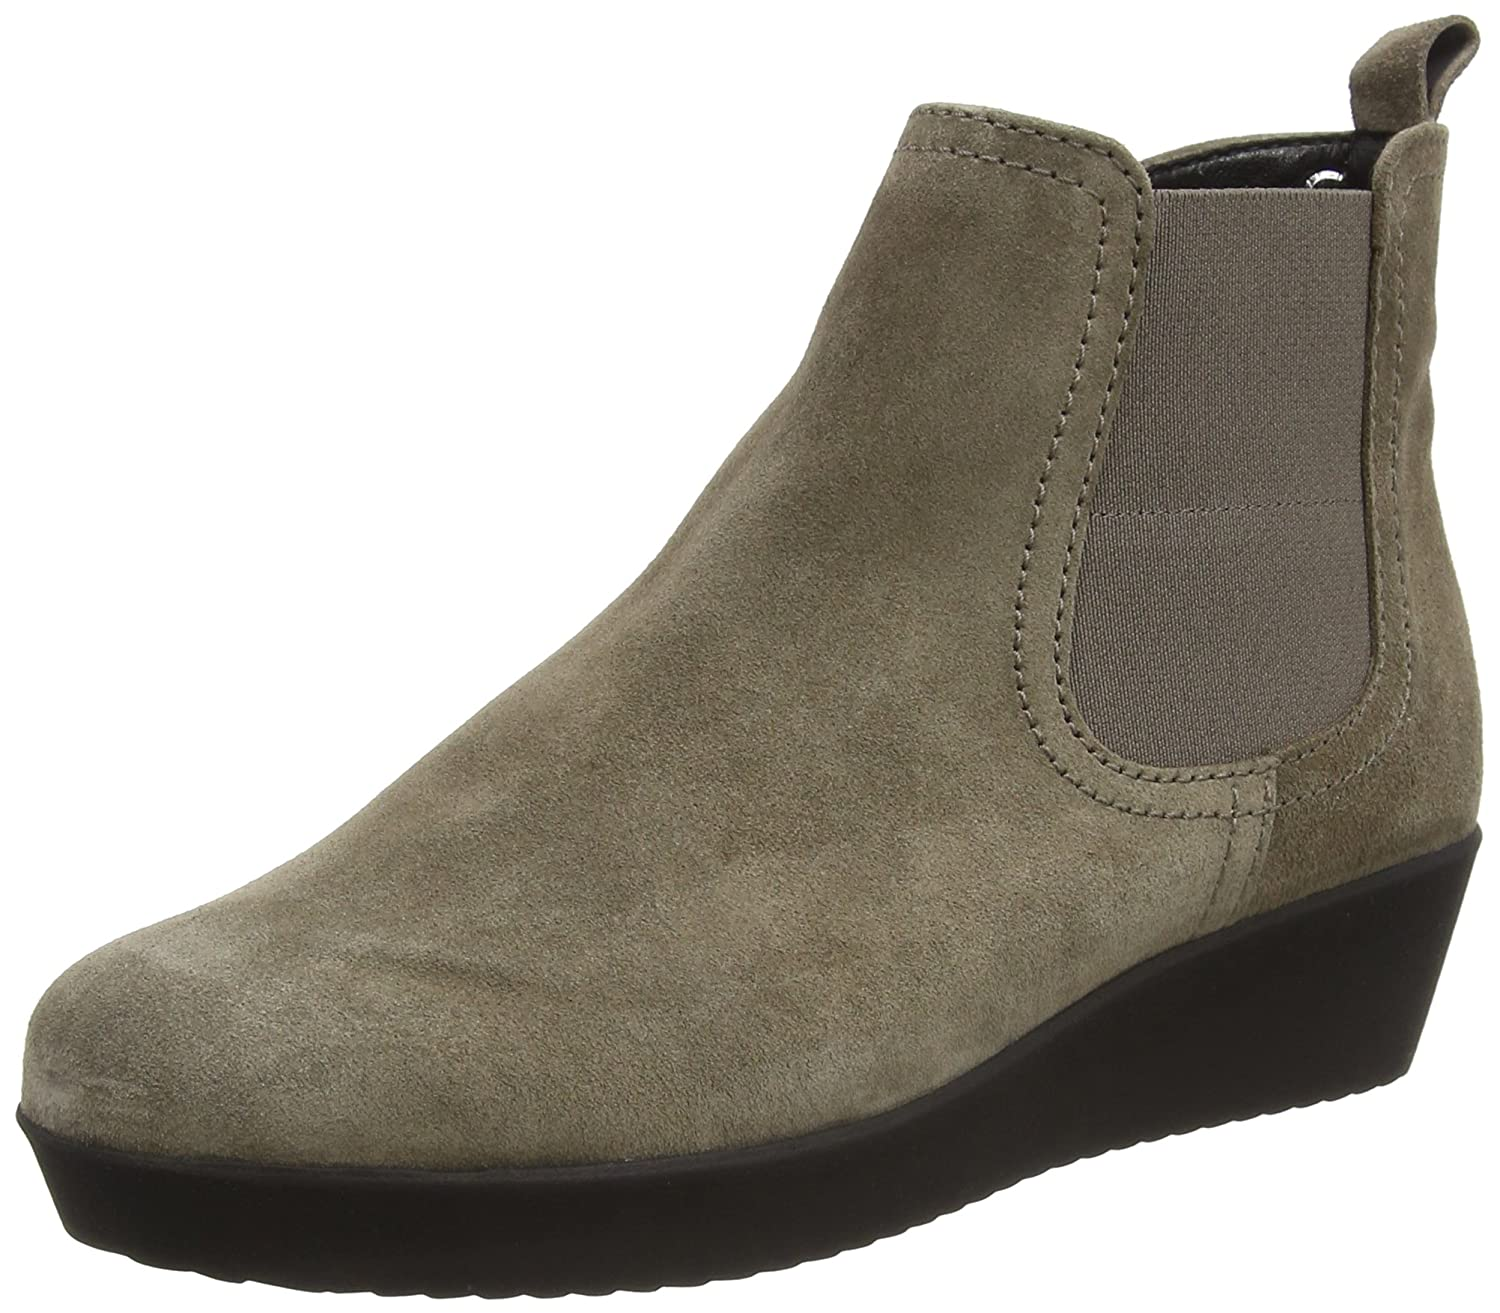 38abfb98a8b Gabor Ghost, Women's Ankle Boots